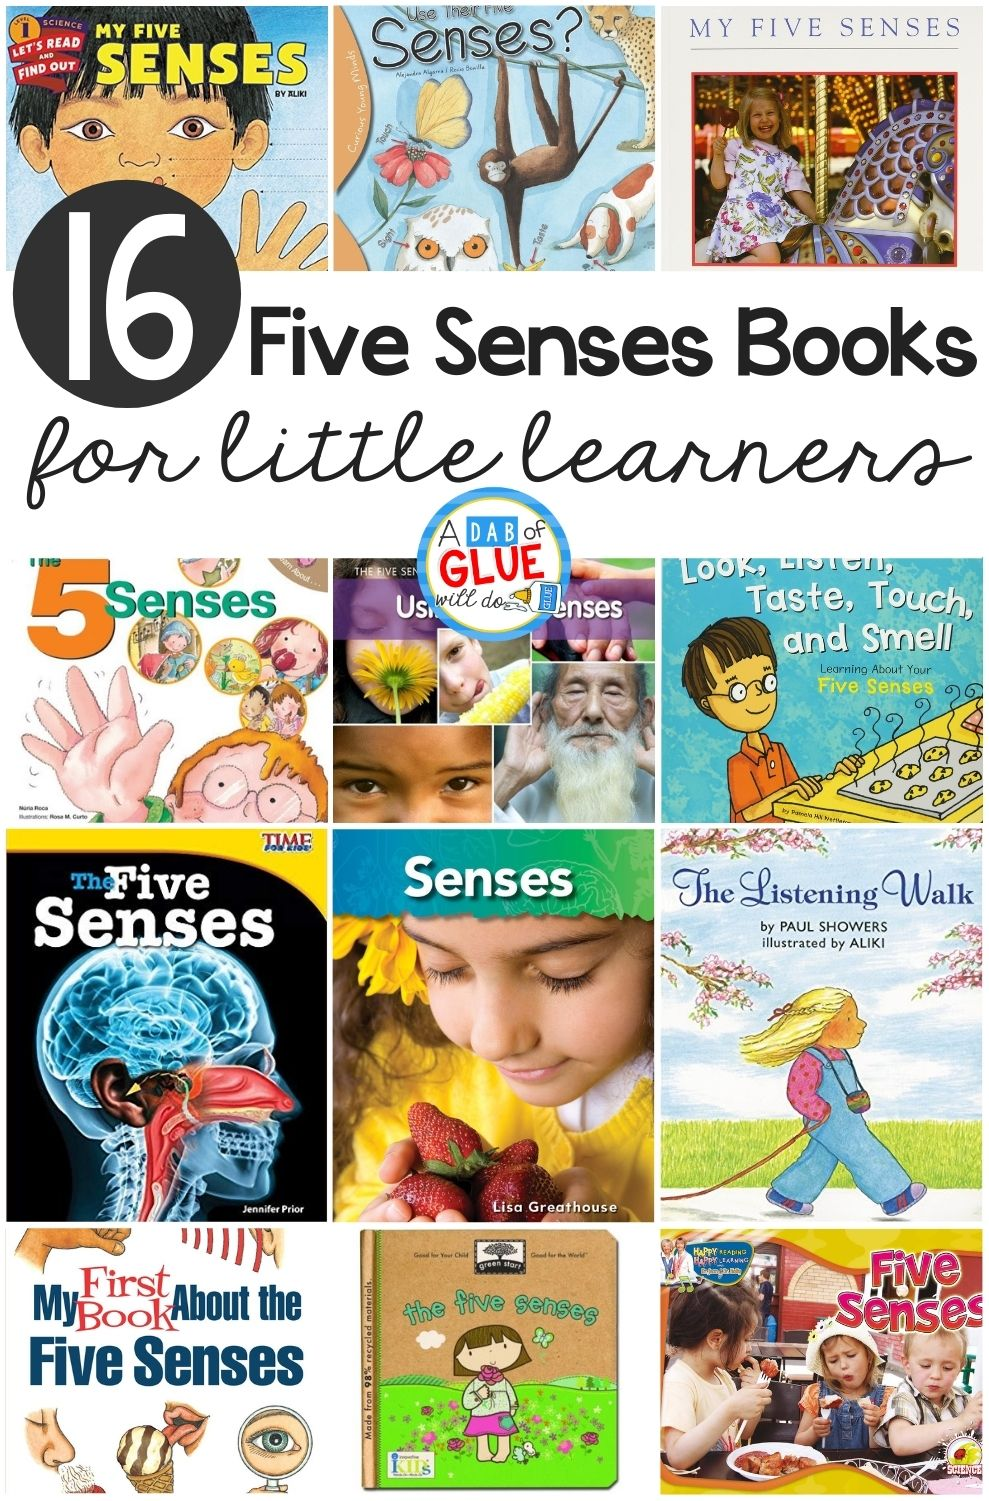 16 Books about the Five Senses for Little Learners